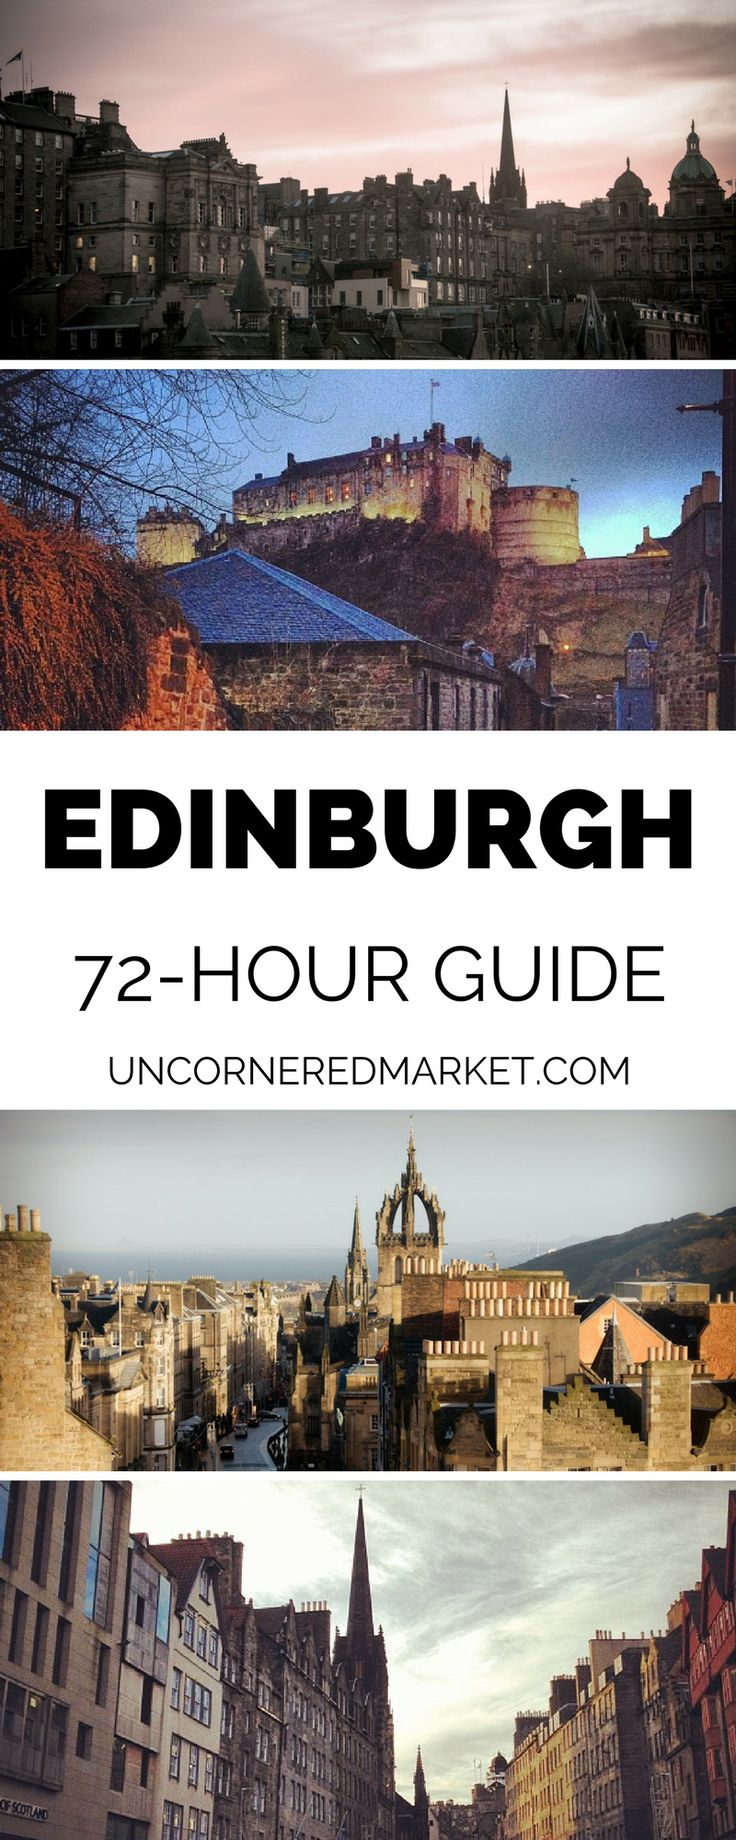 A 3 day guide to exploring Edinburgh, Scotland. Best things to do, what to see and where to eat and drink in Scotland's capital city.| Uncornered Market Travel Blog: Travel Wide, Live Deep   #europe #edinburgh #traveltips